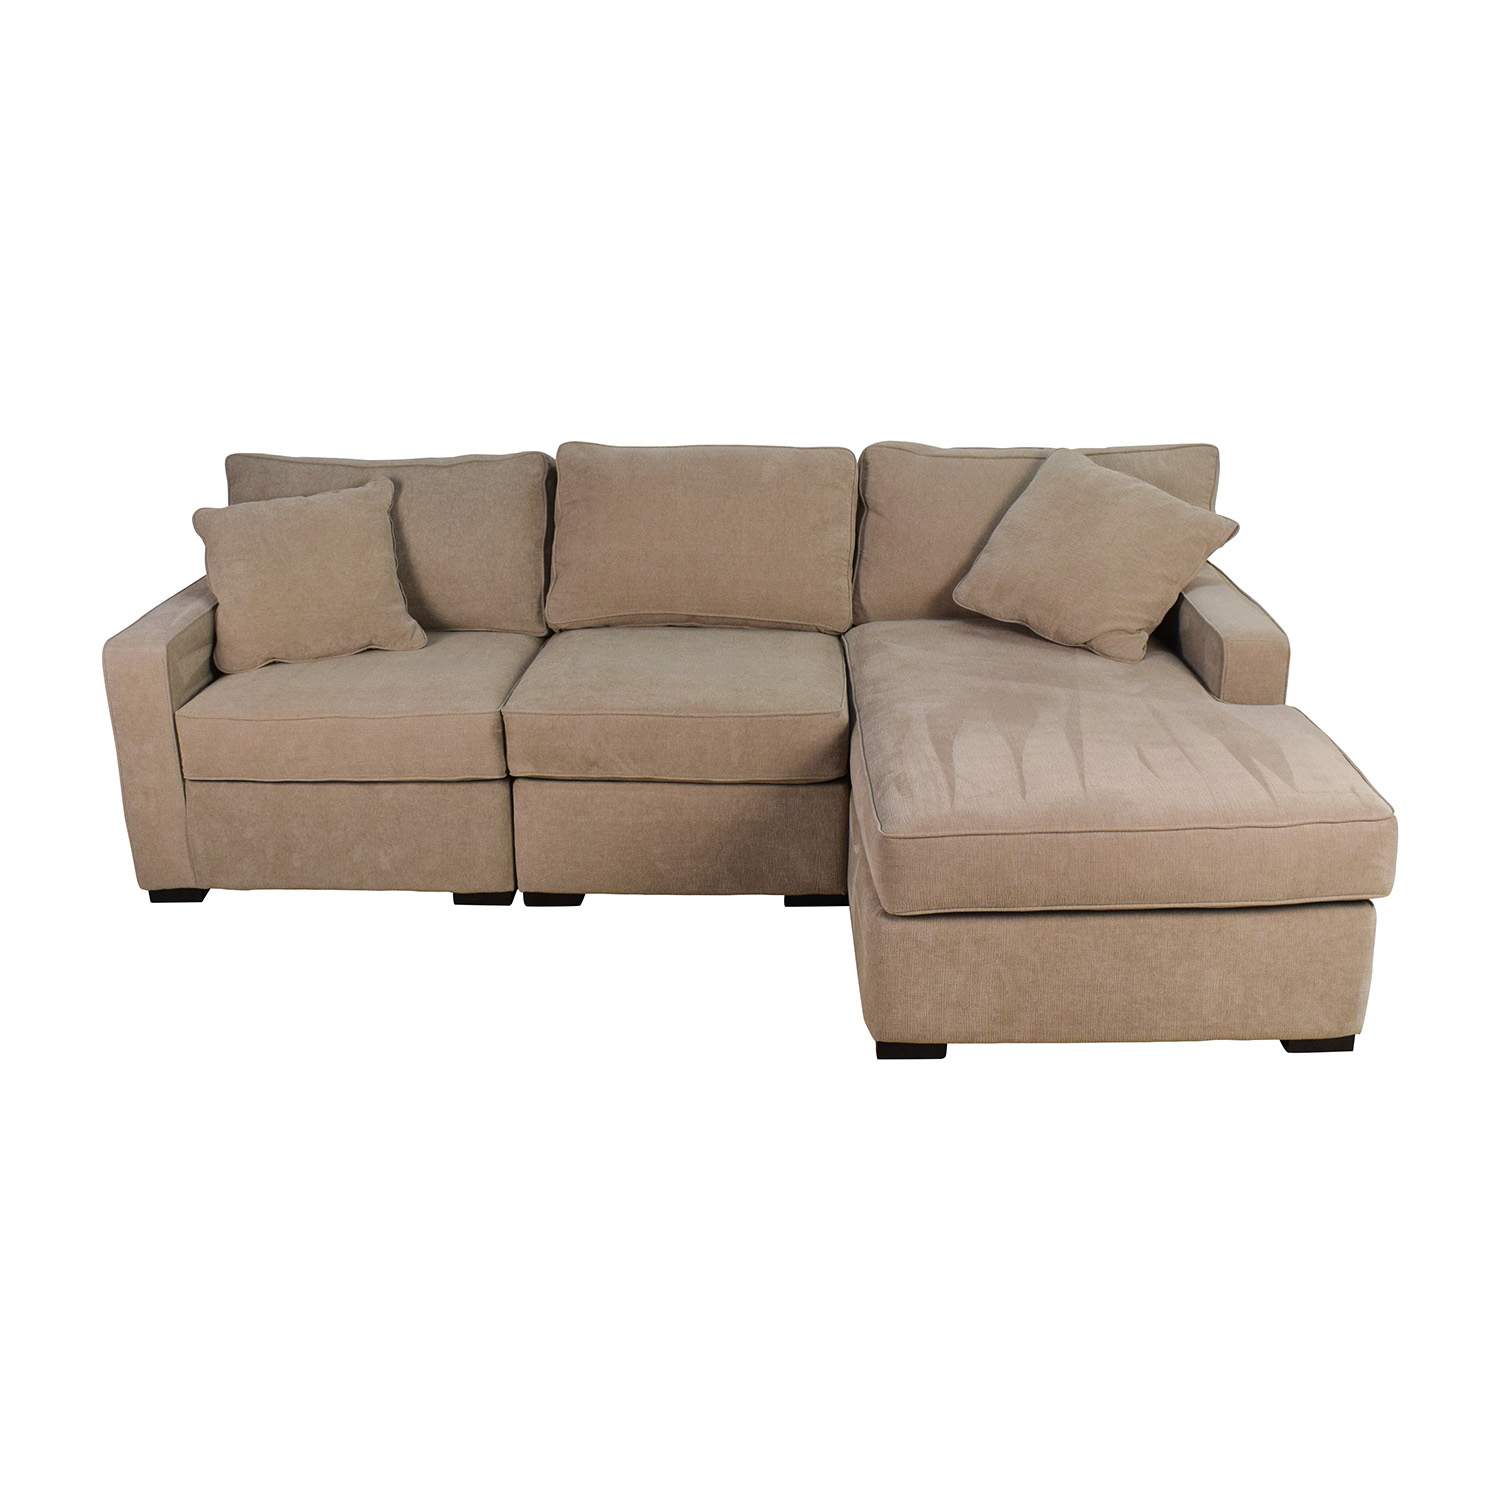 37 Off Macy S Radley 3 Piece Fabric Chaise Sectional